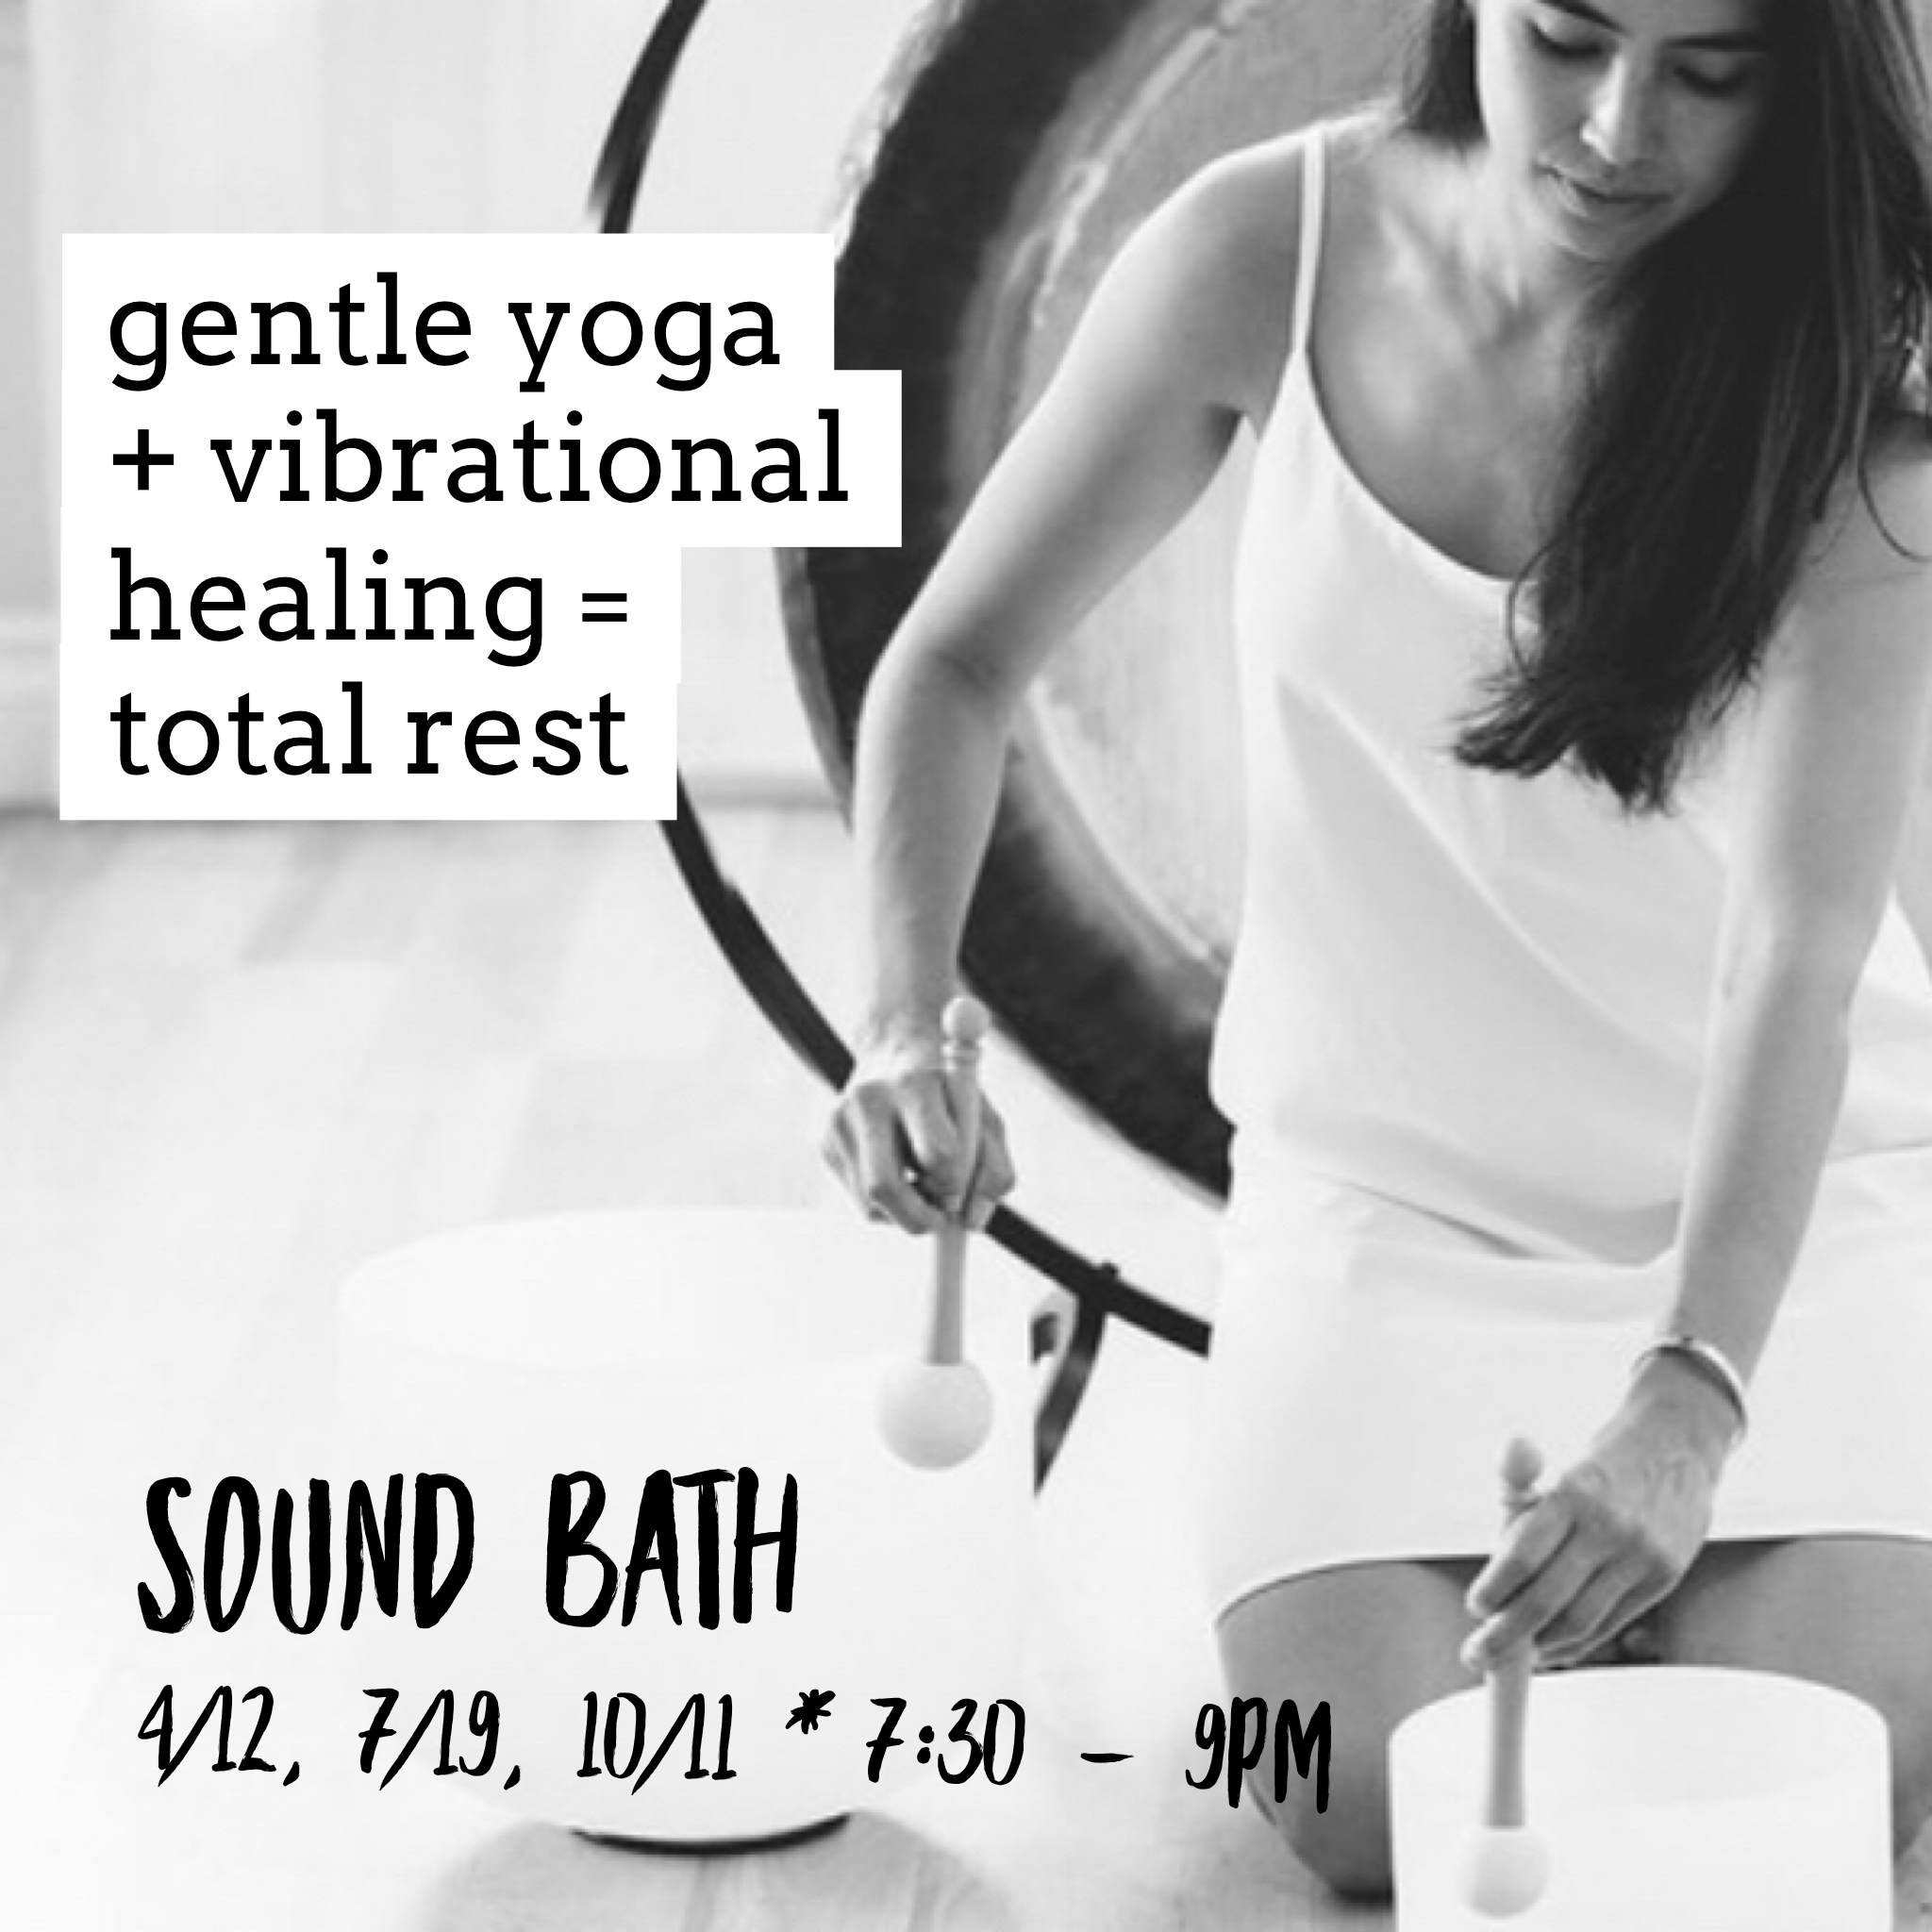 Sound Baths: every quarter at The Yoga Harbor